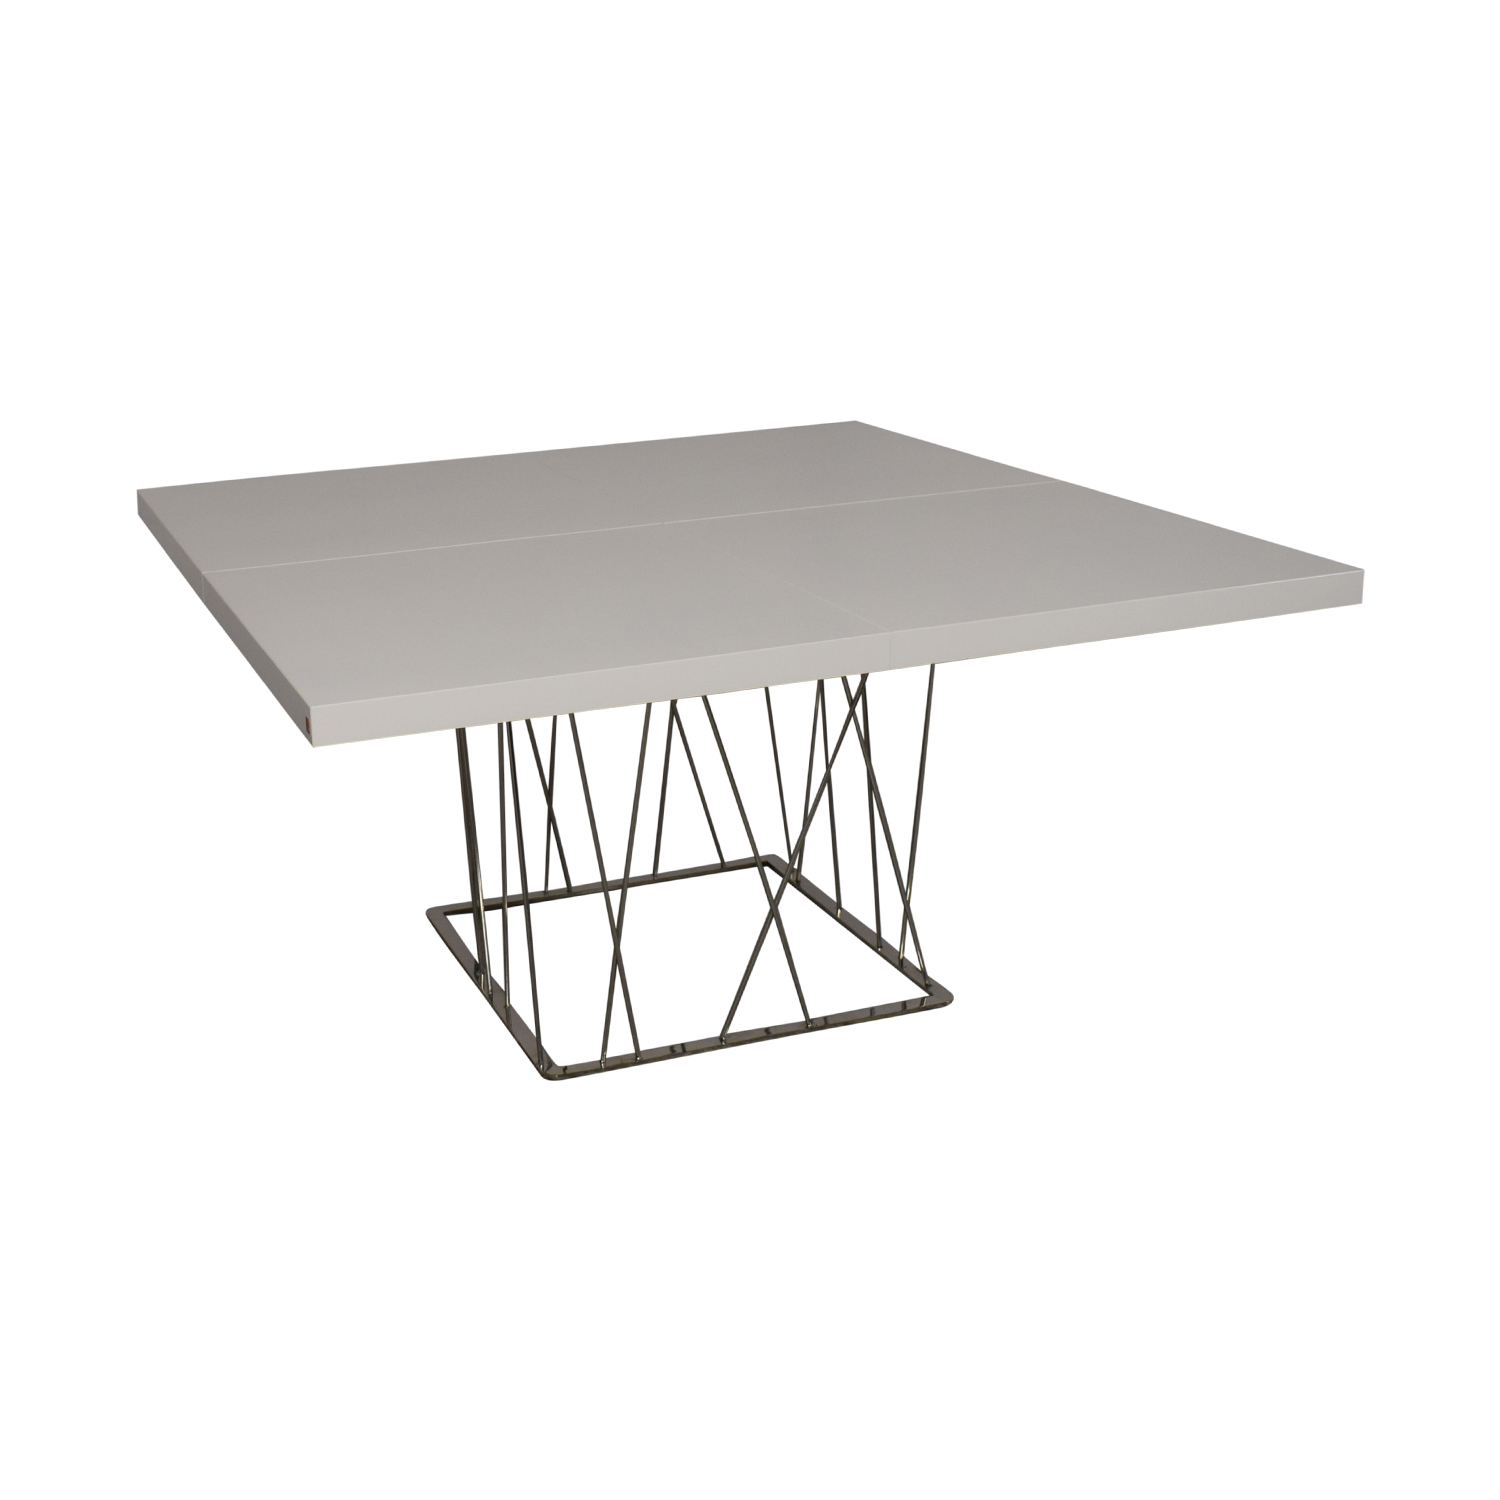 Modloft Modloft Clarges Glossy White Table Utility Tables